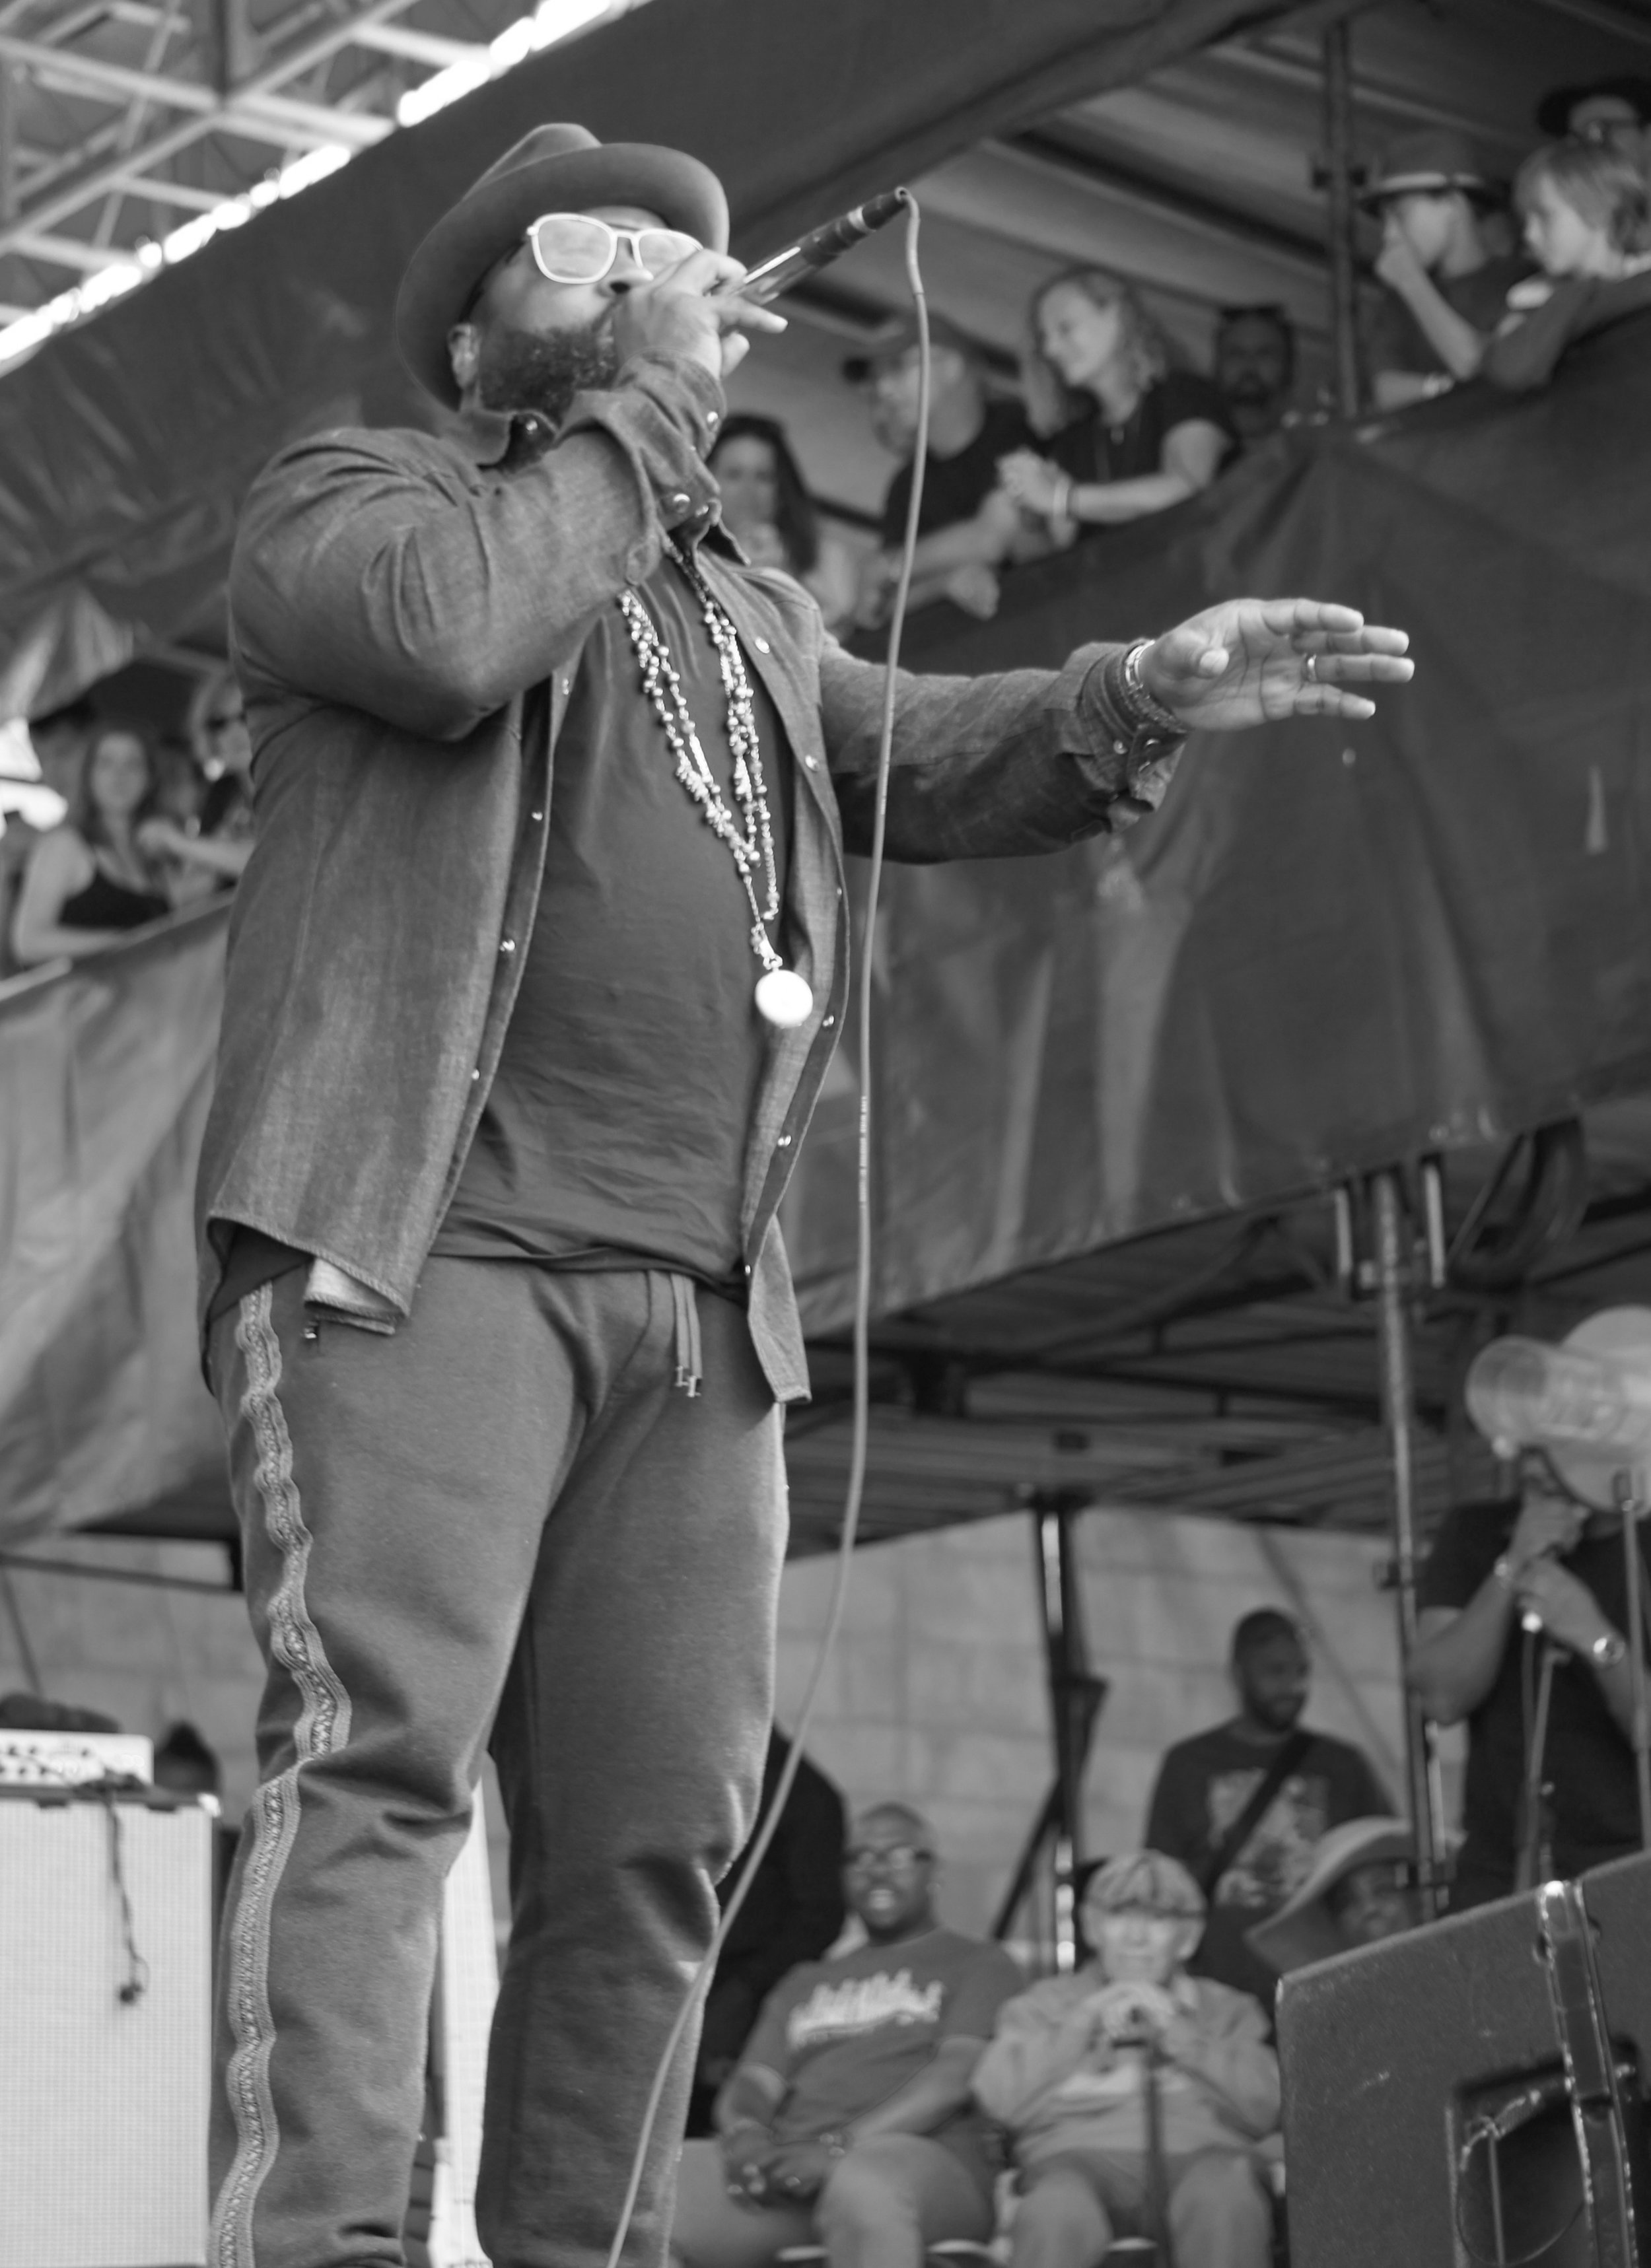 Black Thought gets the crowd hyped while Christian McBride and George Wein look on (photographer: Bridget Arnwine)